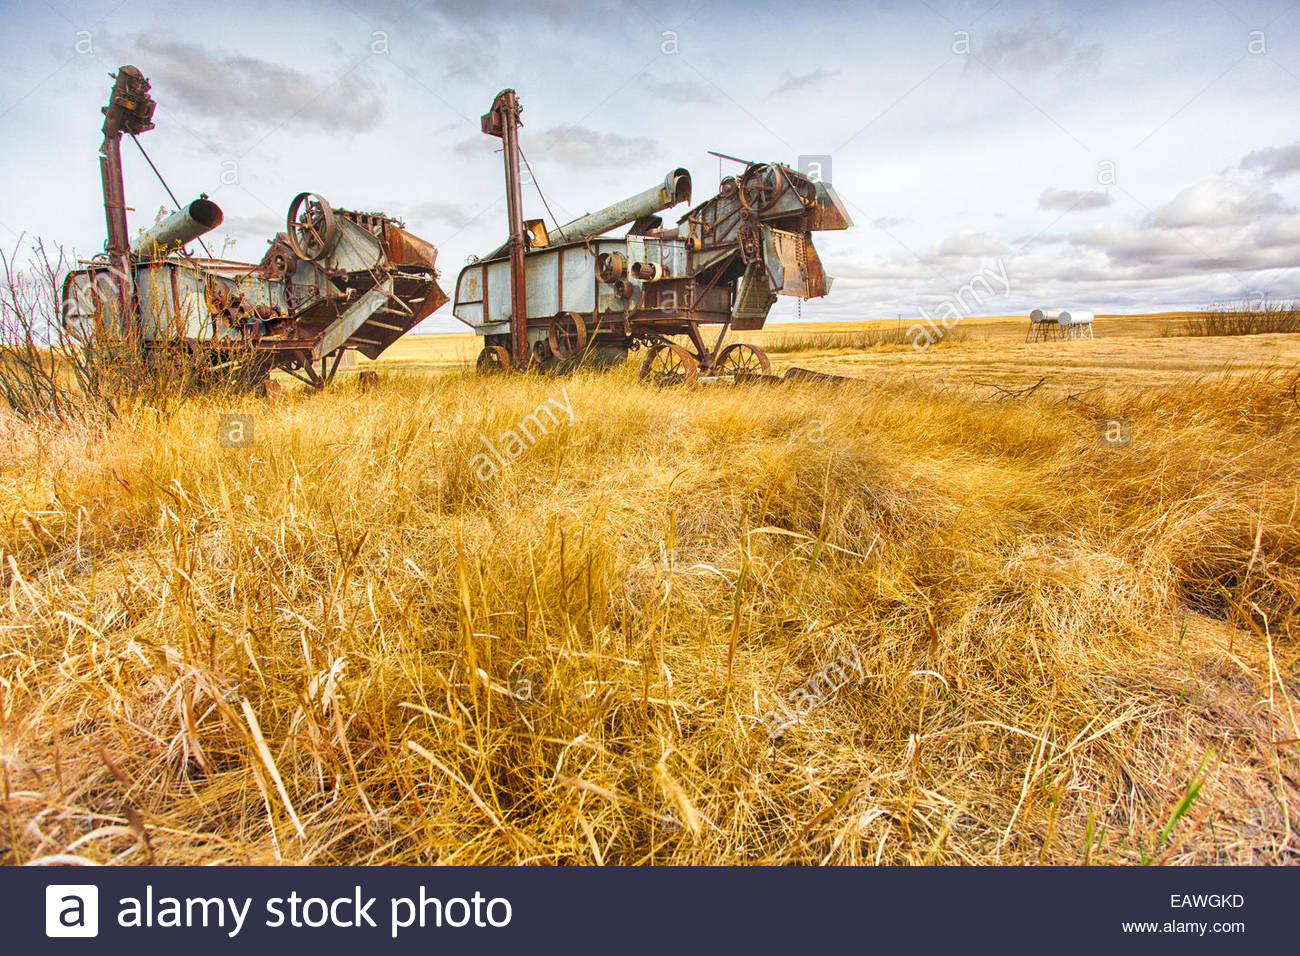 Two old-fashioned threshers on the Canadian prairie. - Stock Image